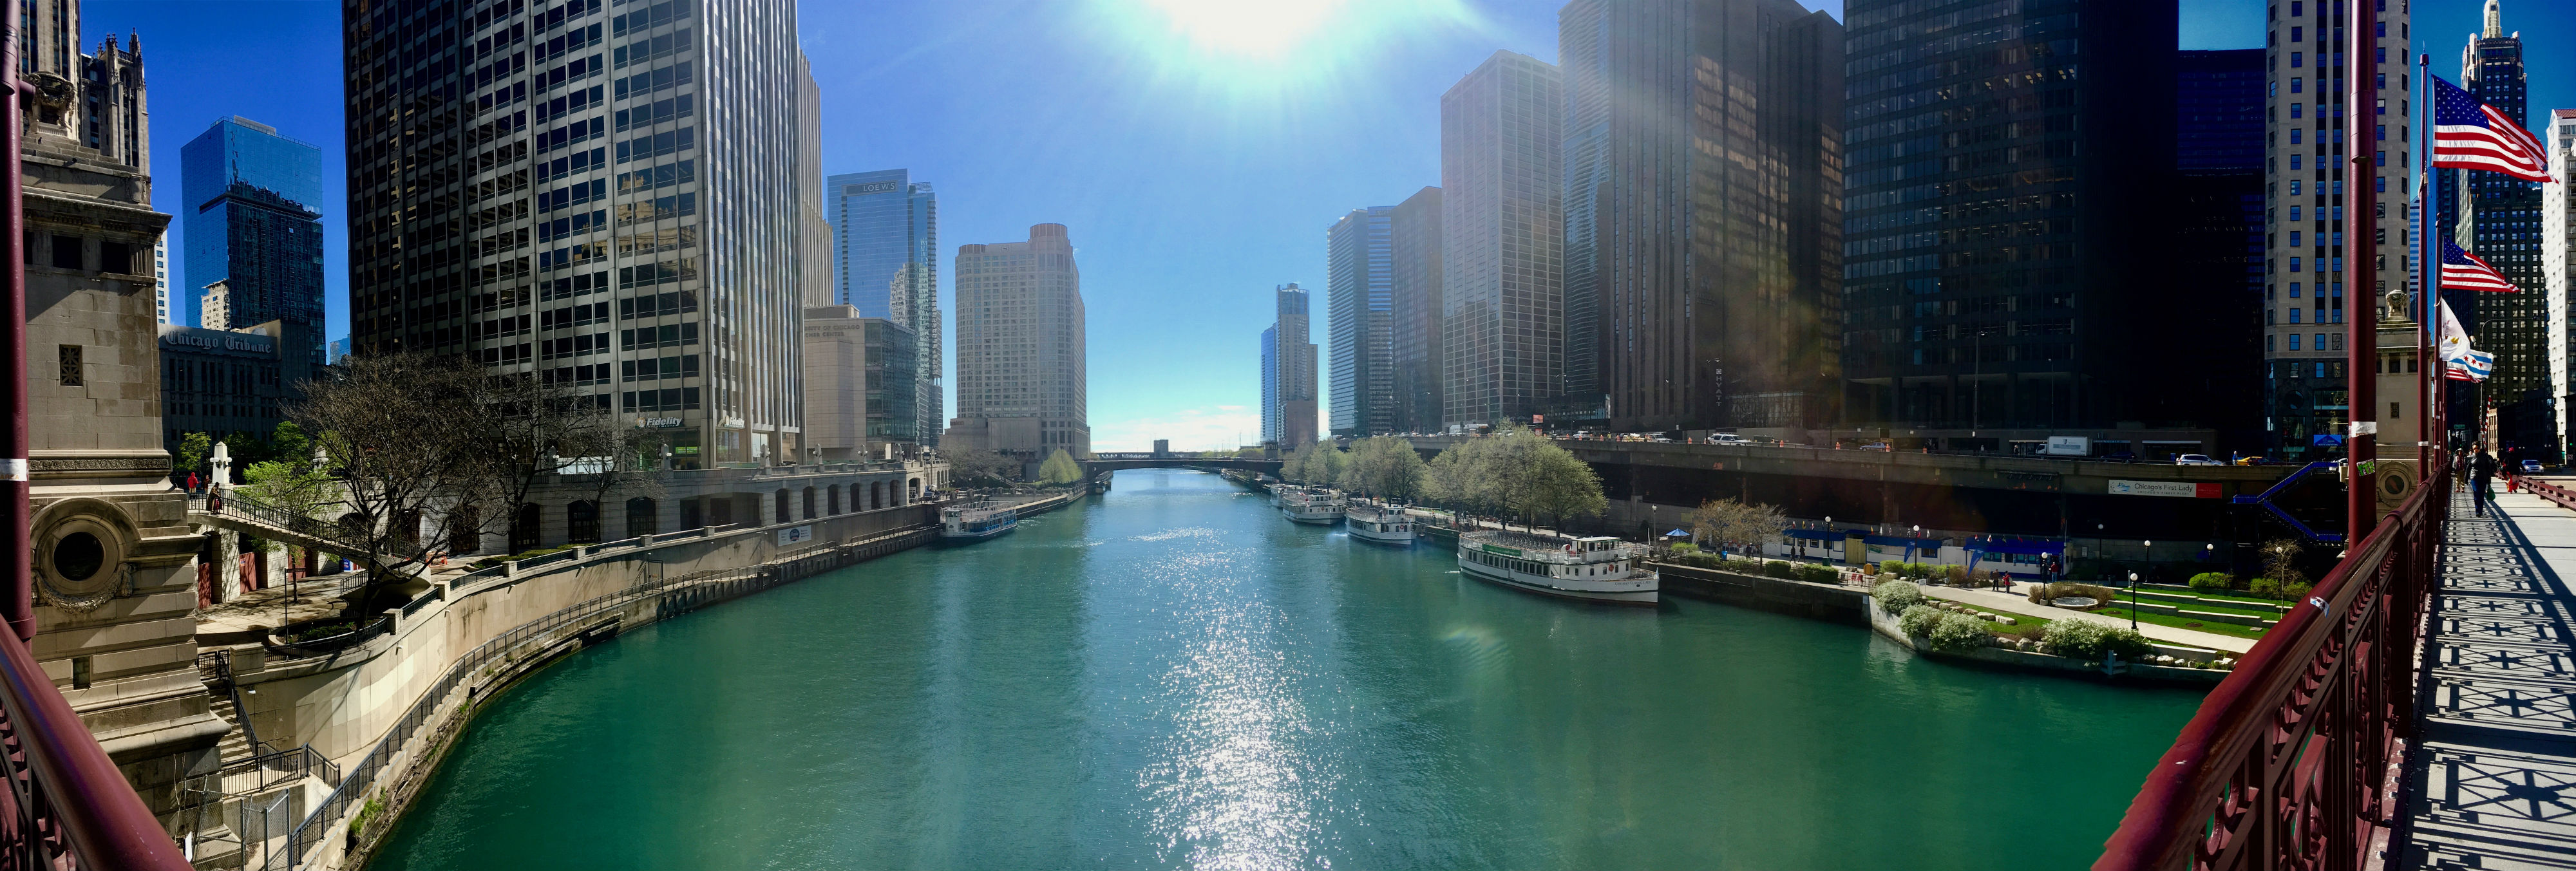 chicago incontournables le loop